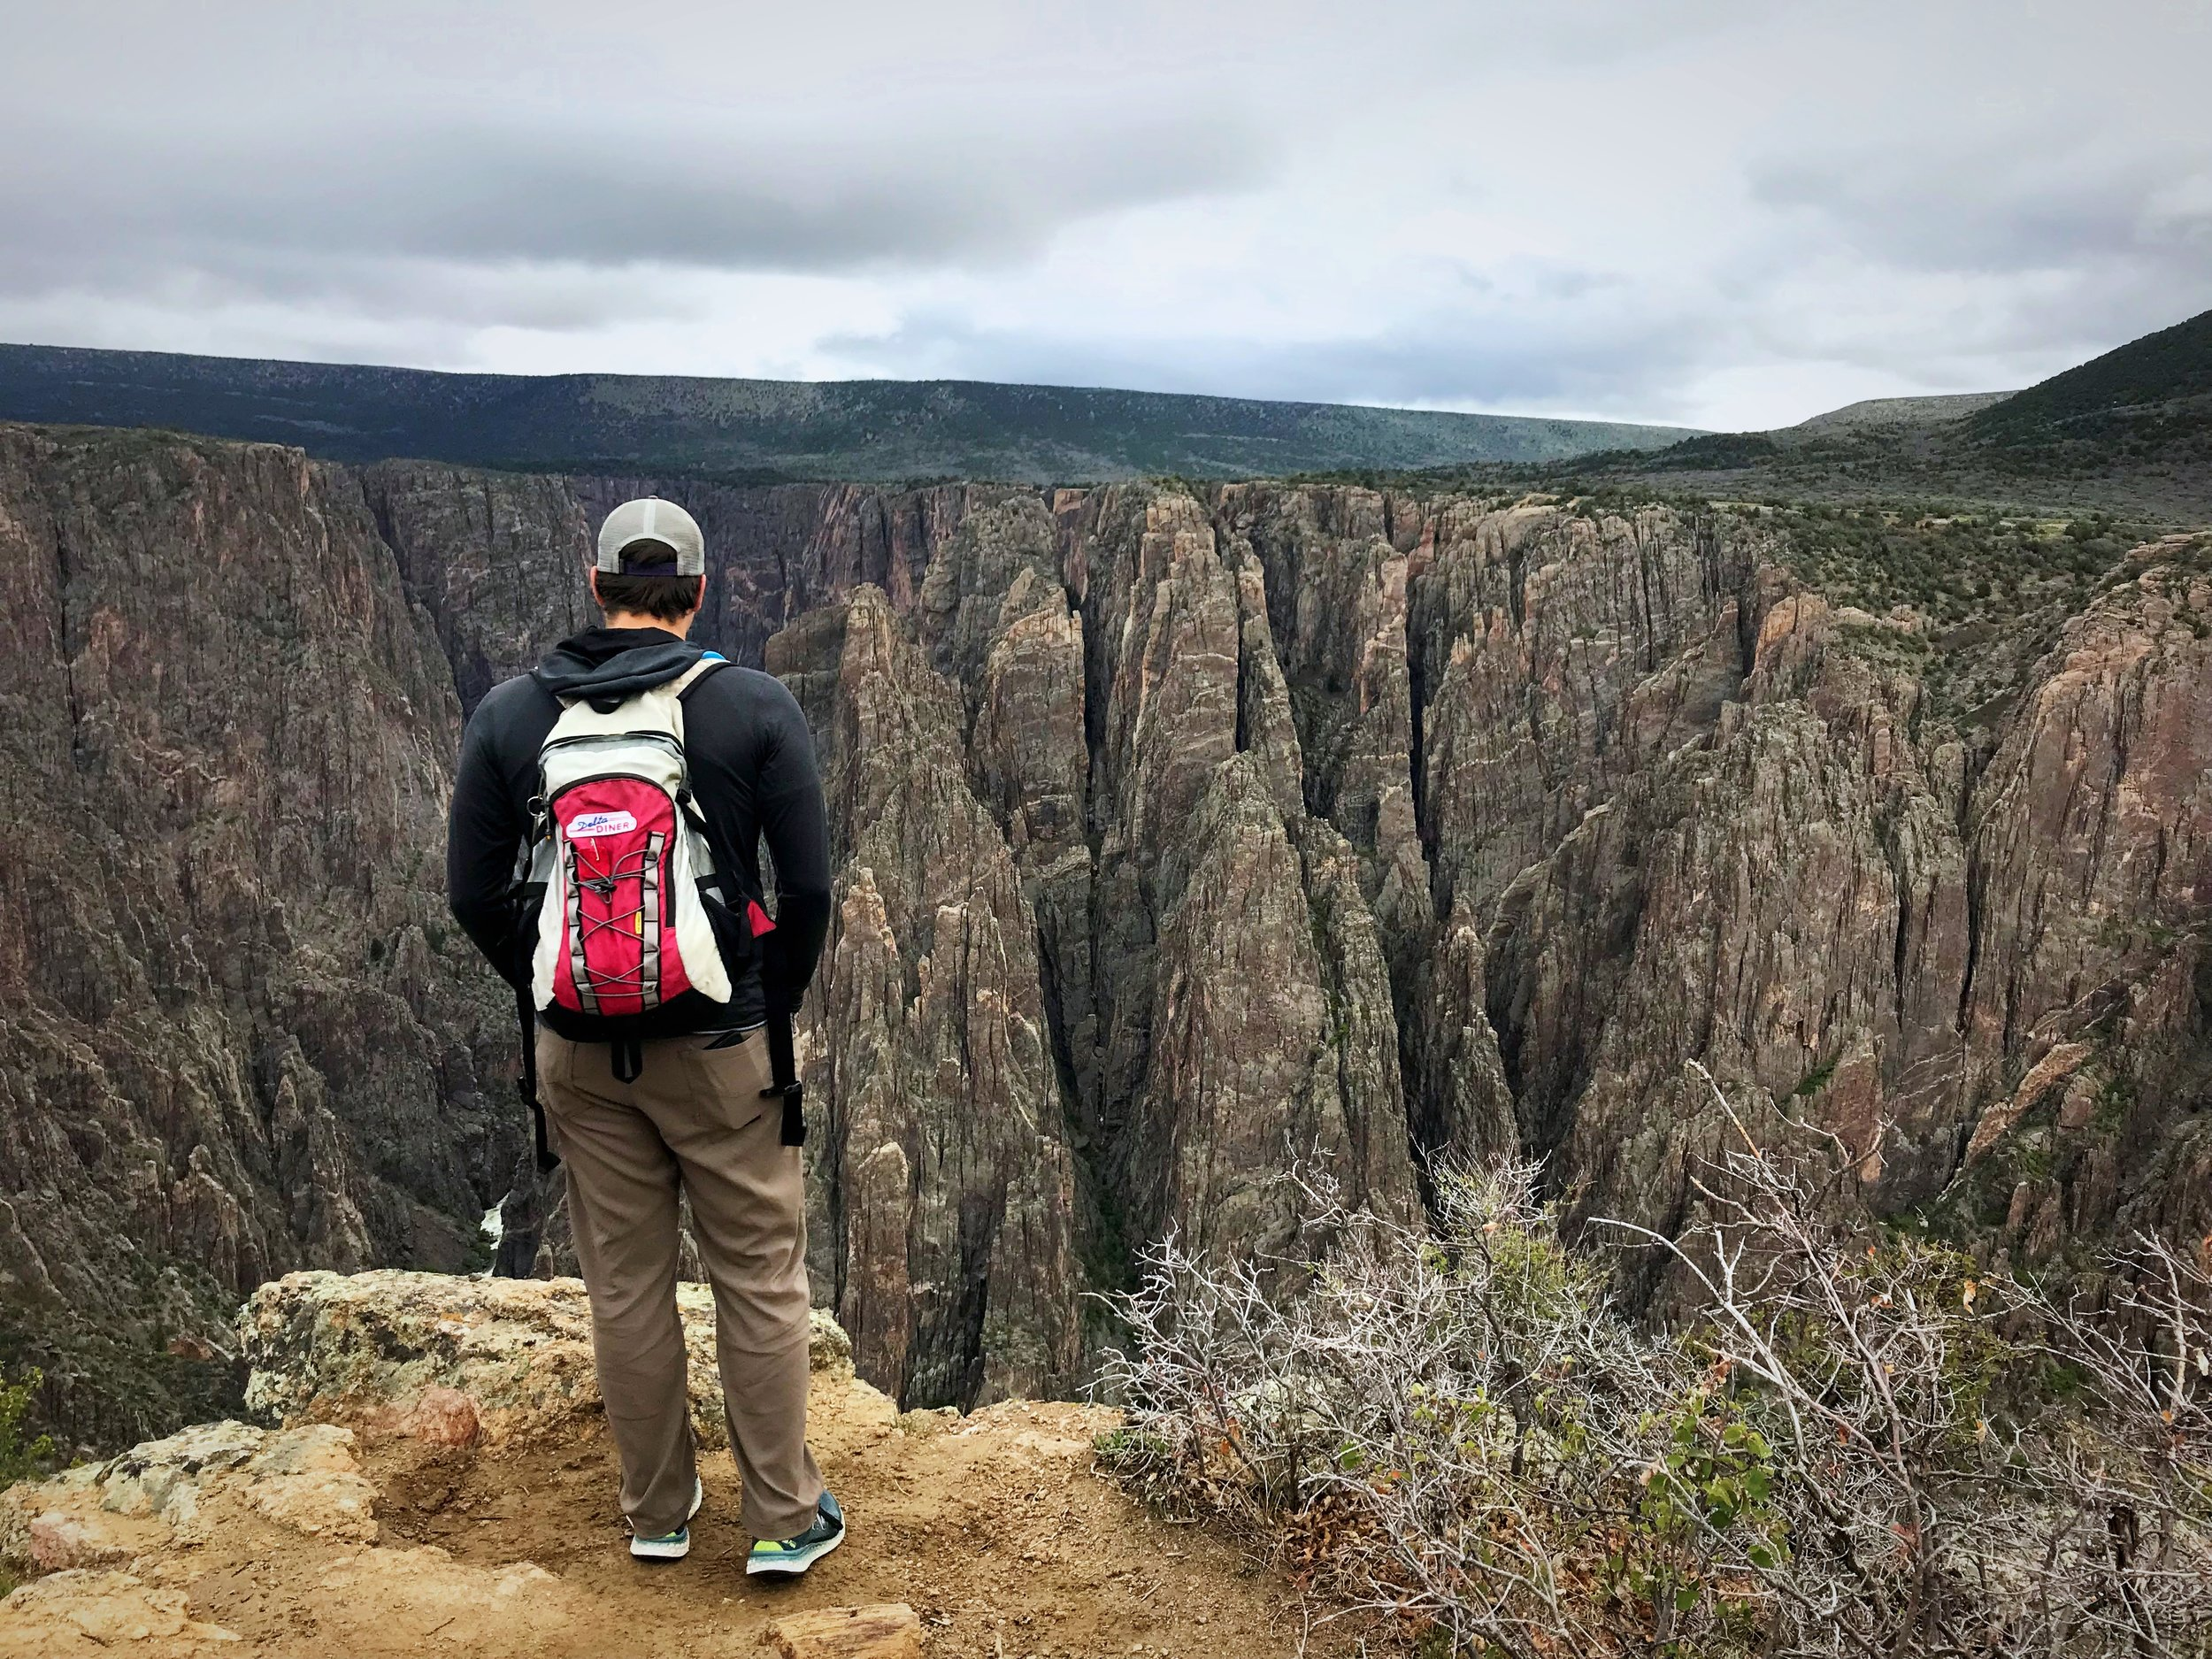 A small day pack is perfect for taking on the Gunnison Route. Anything bulkier could be a bit unwieldy while descending.